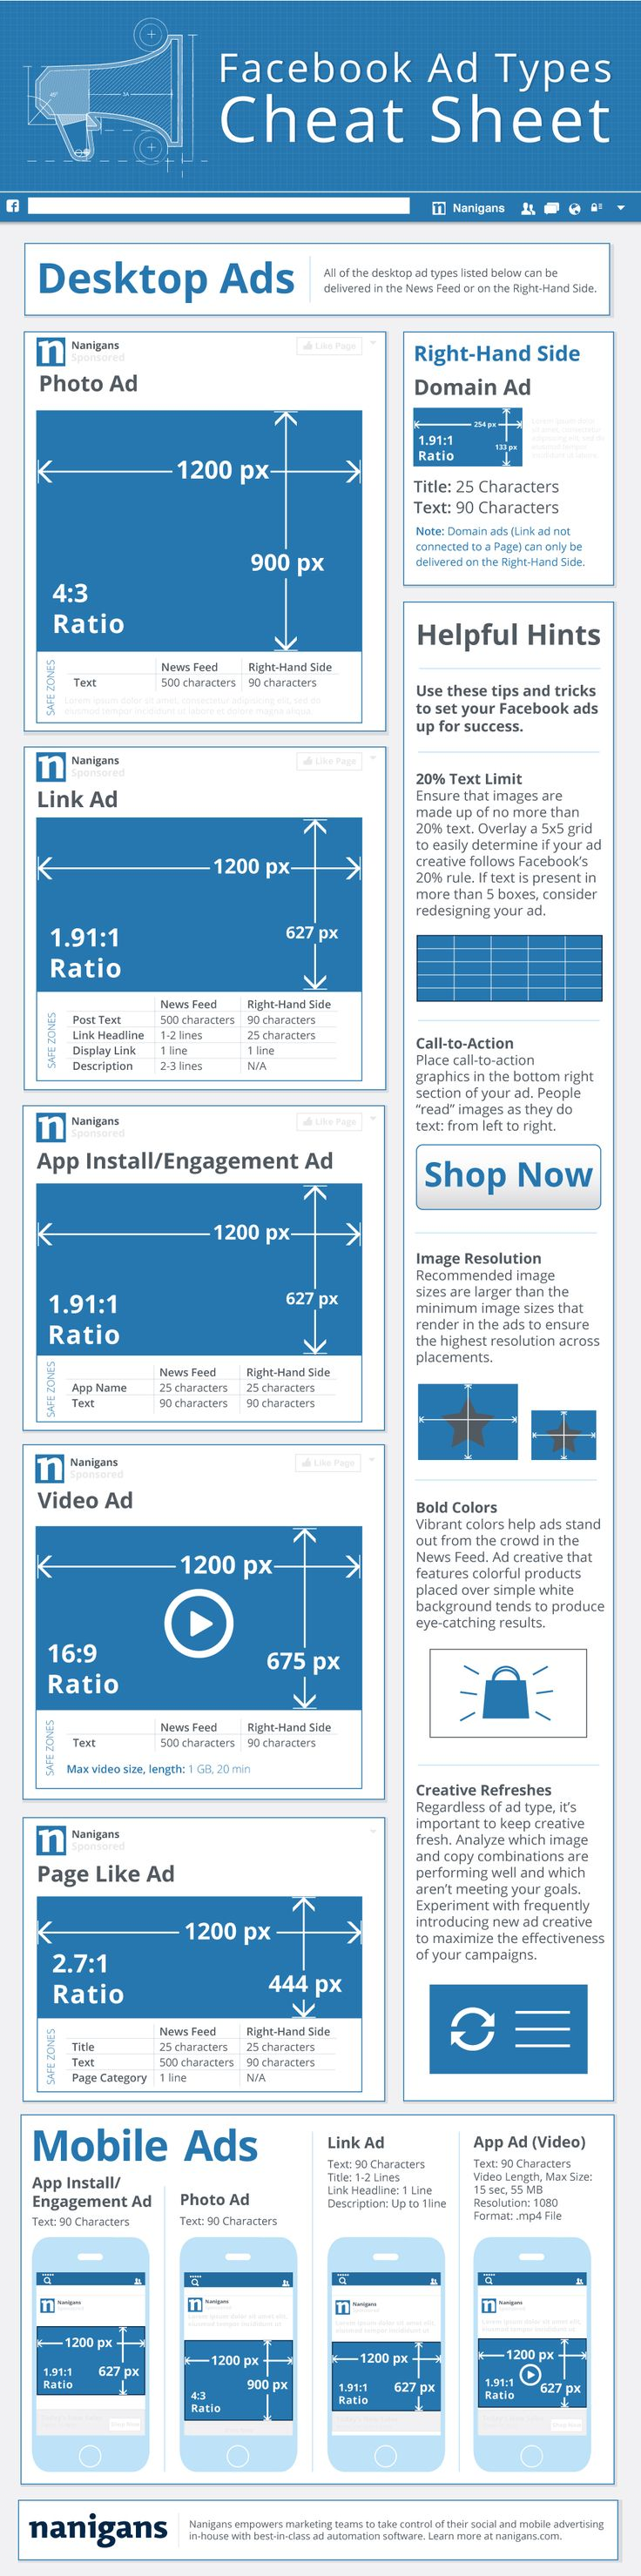 Infographic: Facebook ad types cheat sheet - Love a good success story? Learn how I went from zero to 1 million in sales in 5 months with an e-commerce store.